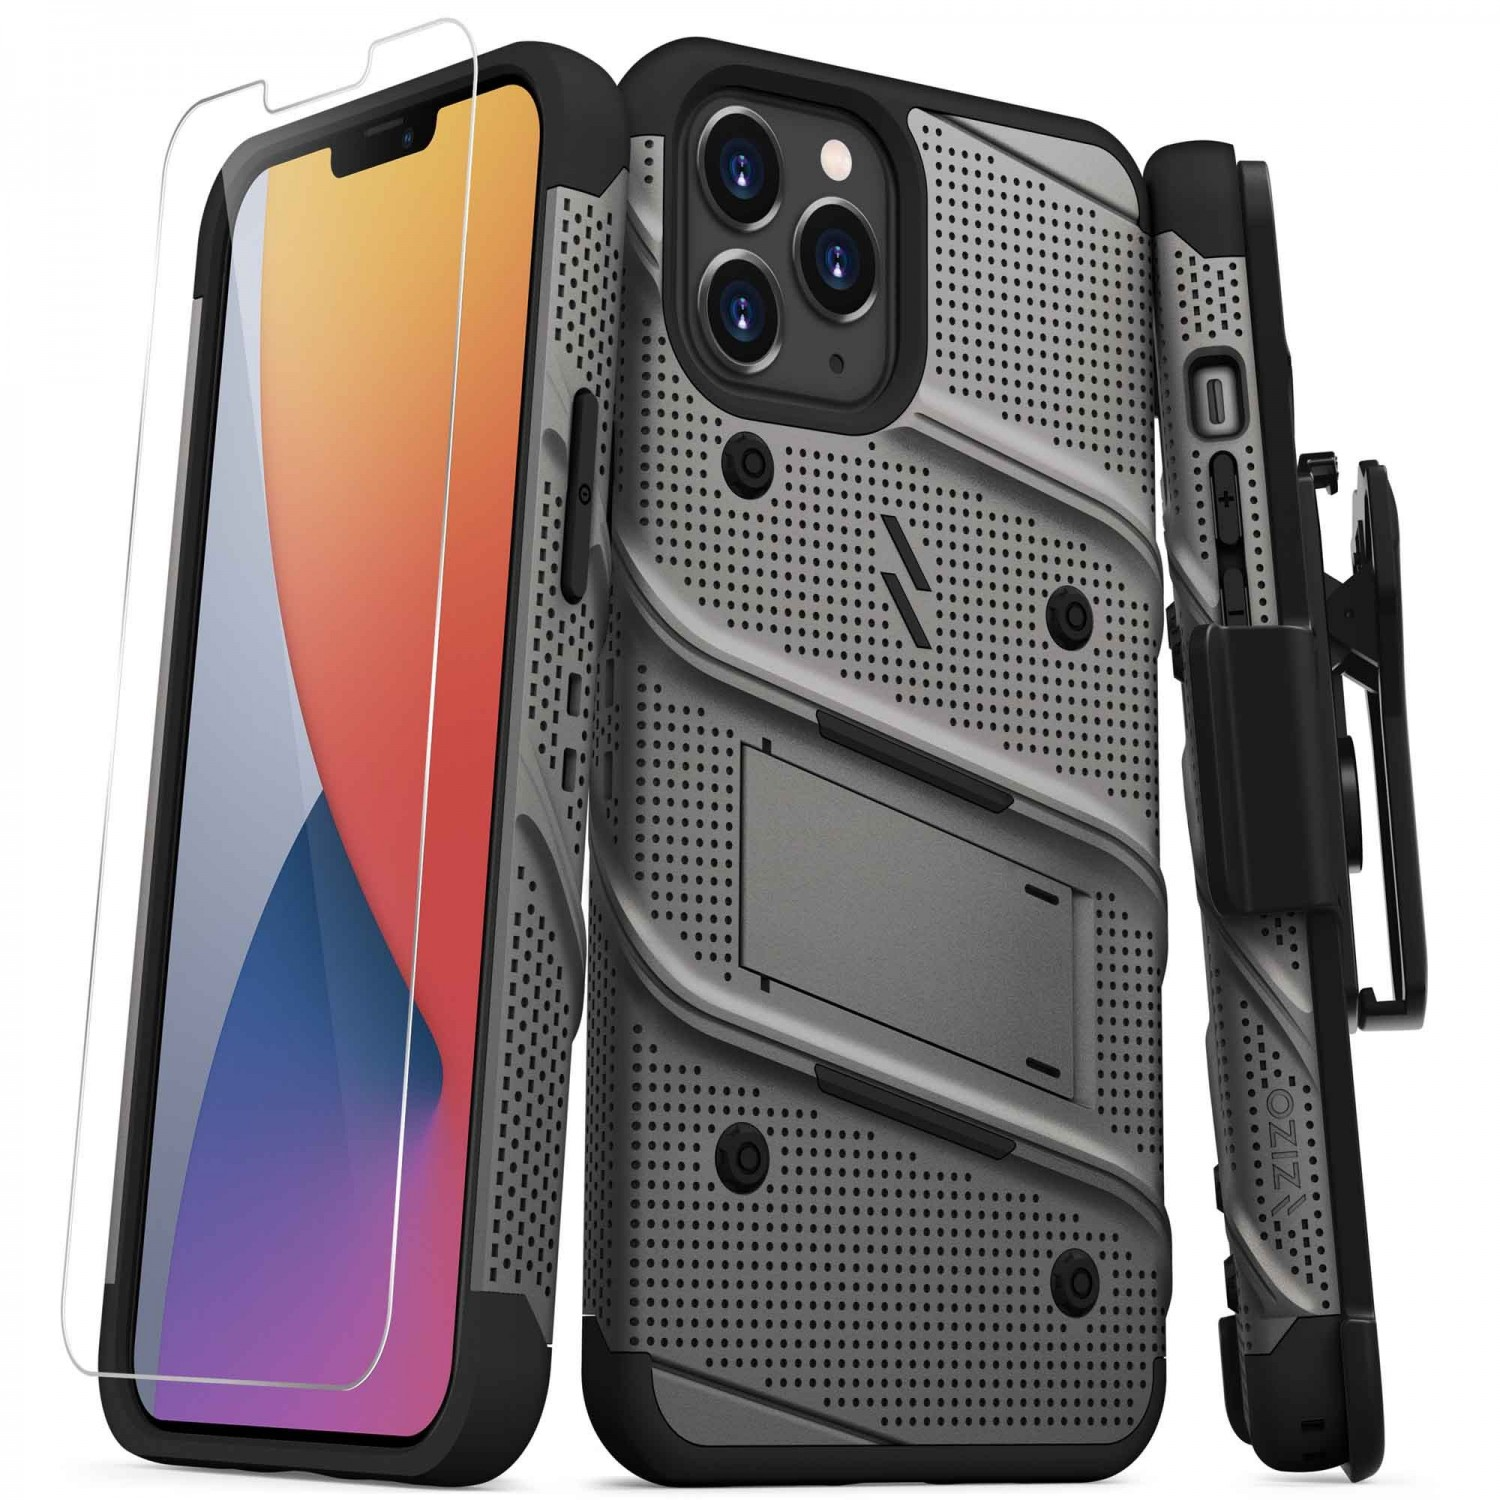 Case - Zizo Bolt Case for iPhone 12 PRO MAX Grey